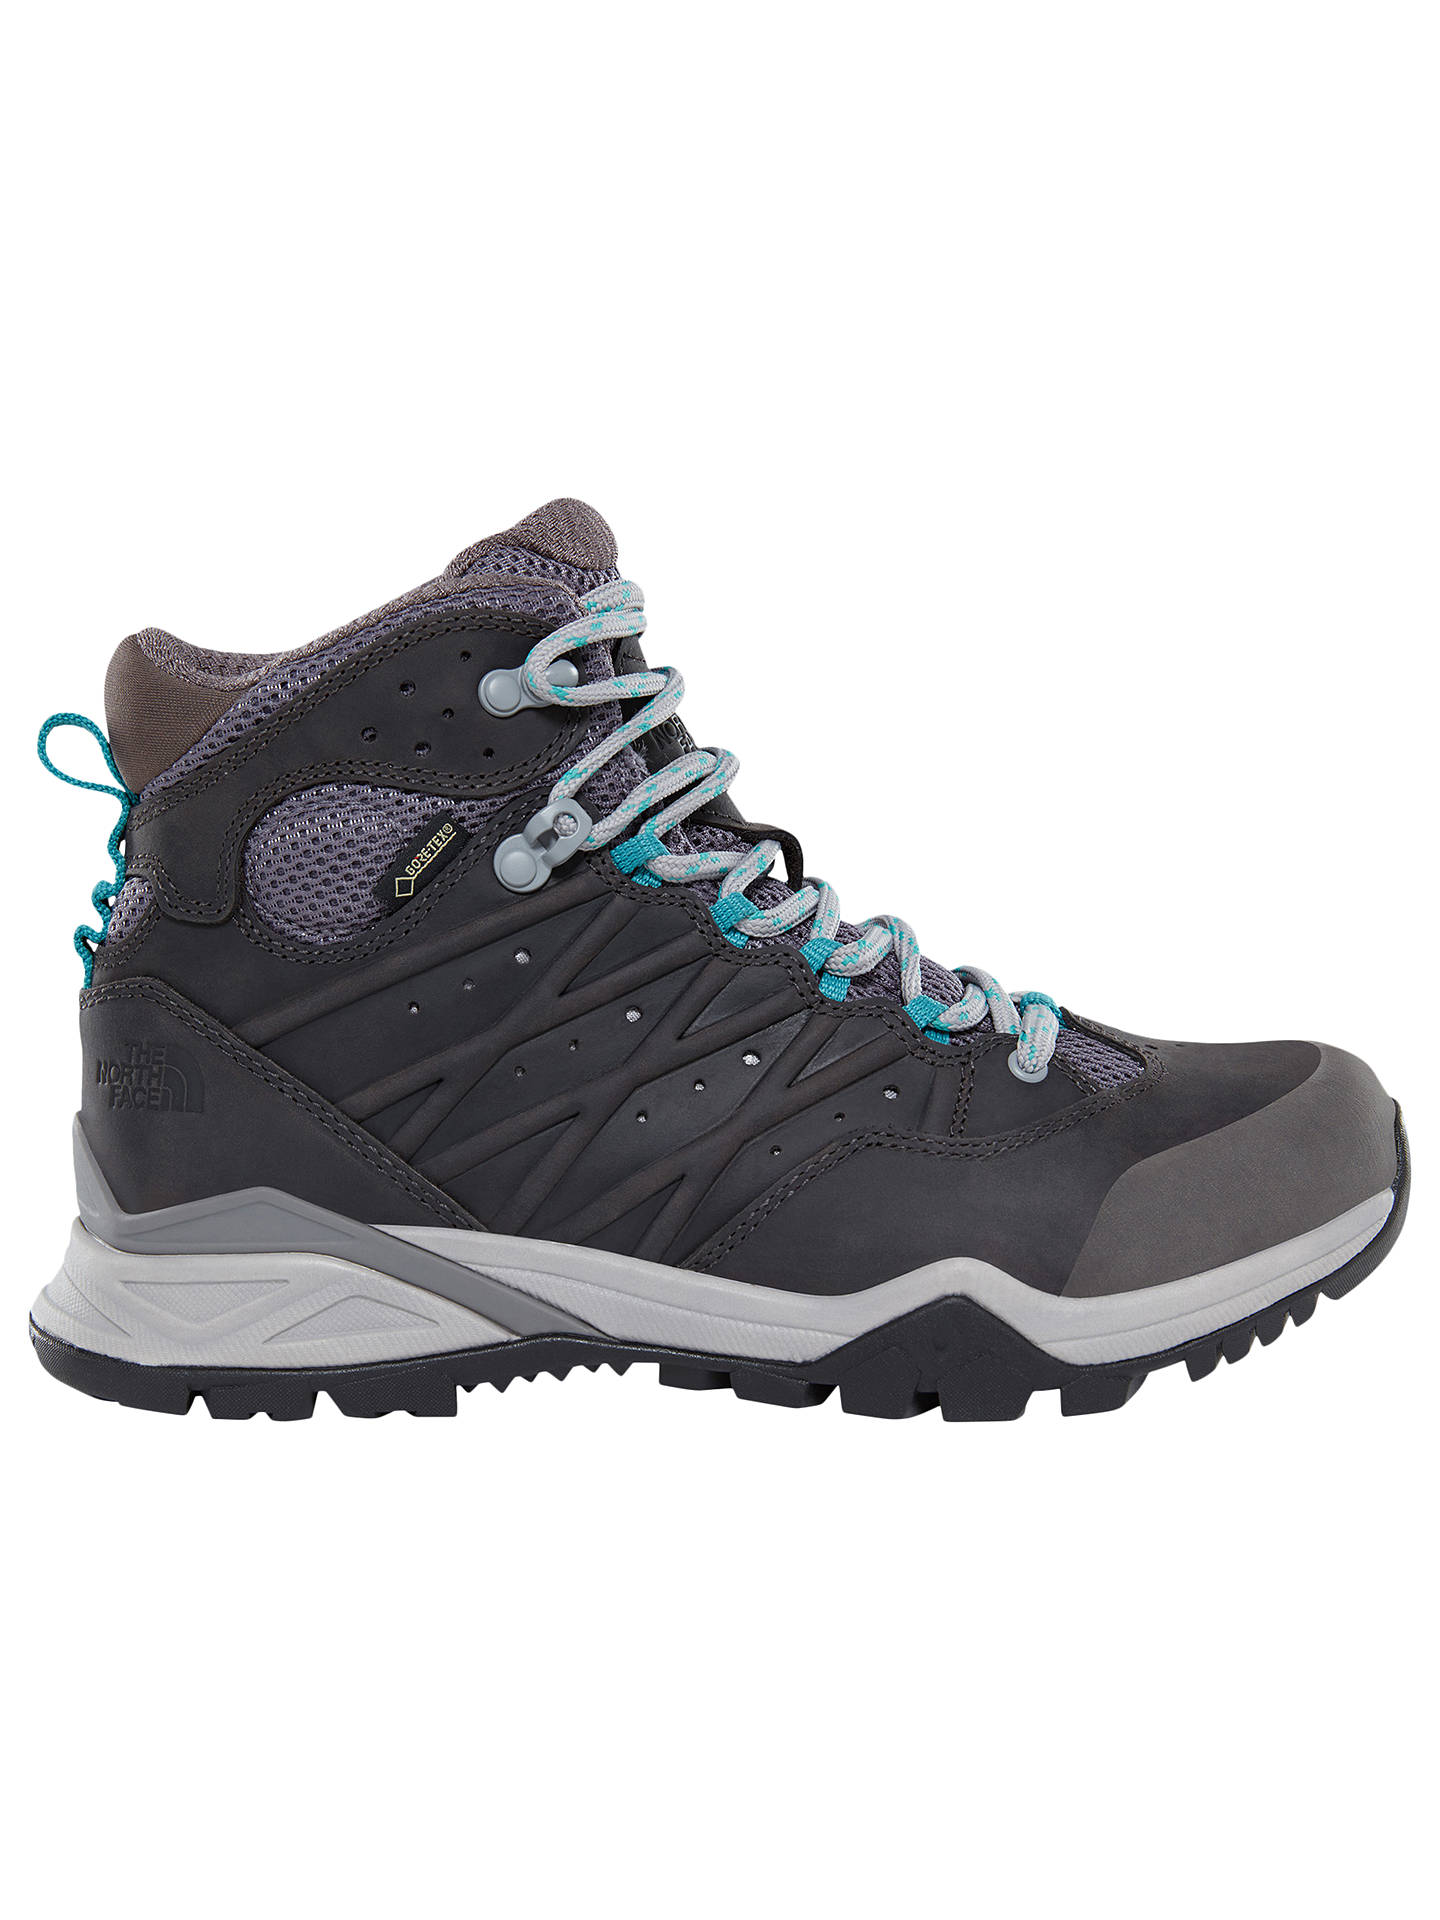 BuyThe North Face Hedgehog Hike 2 Mid GORE-TEX Women's Hiking Boots, Silver/Grey, 4 Online at johnlewis.com